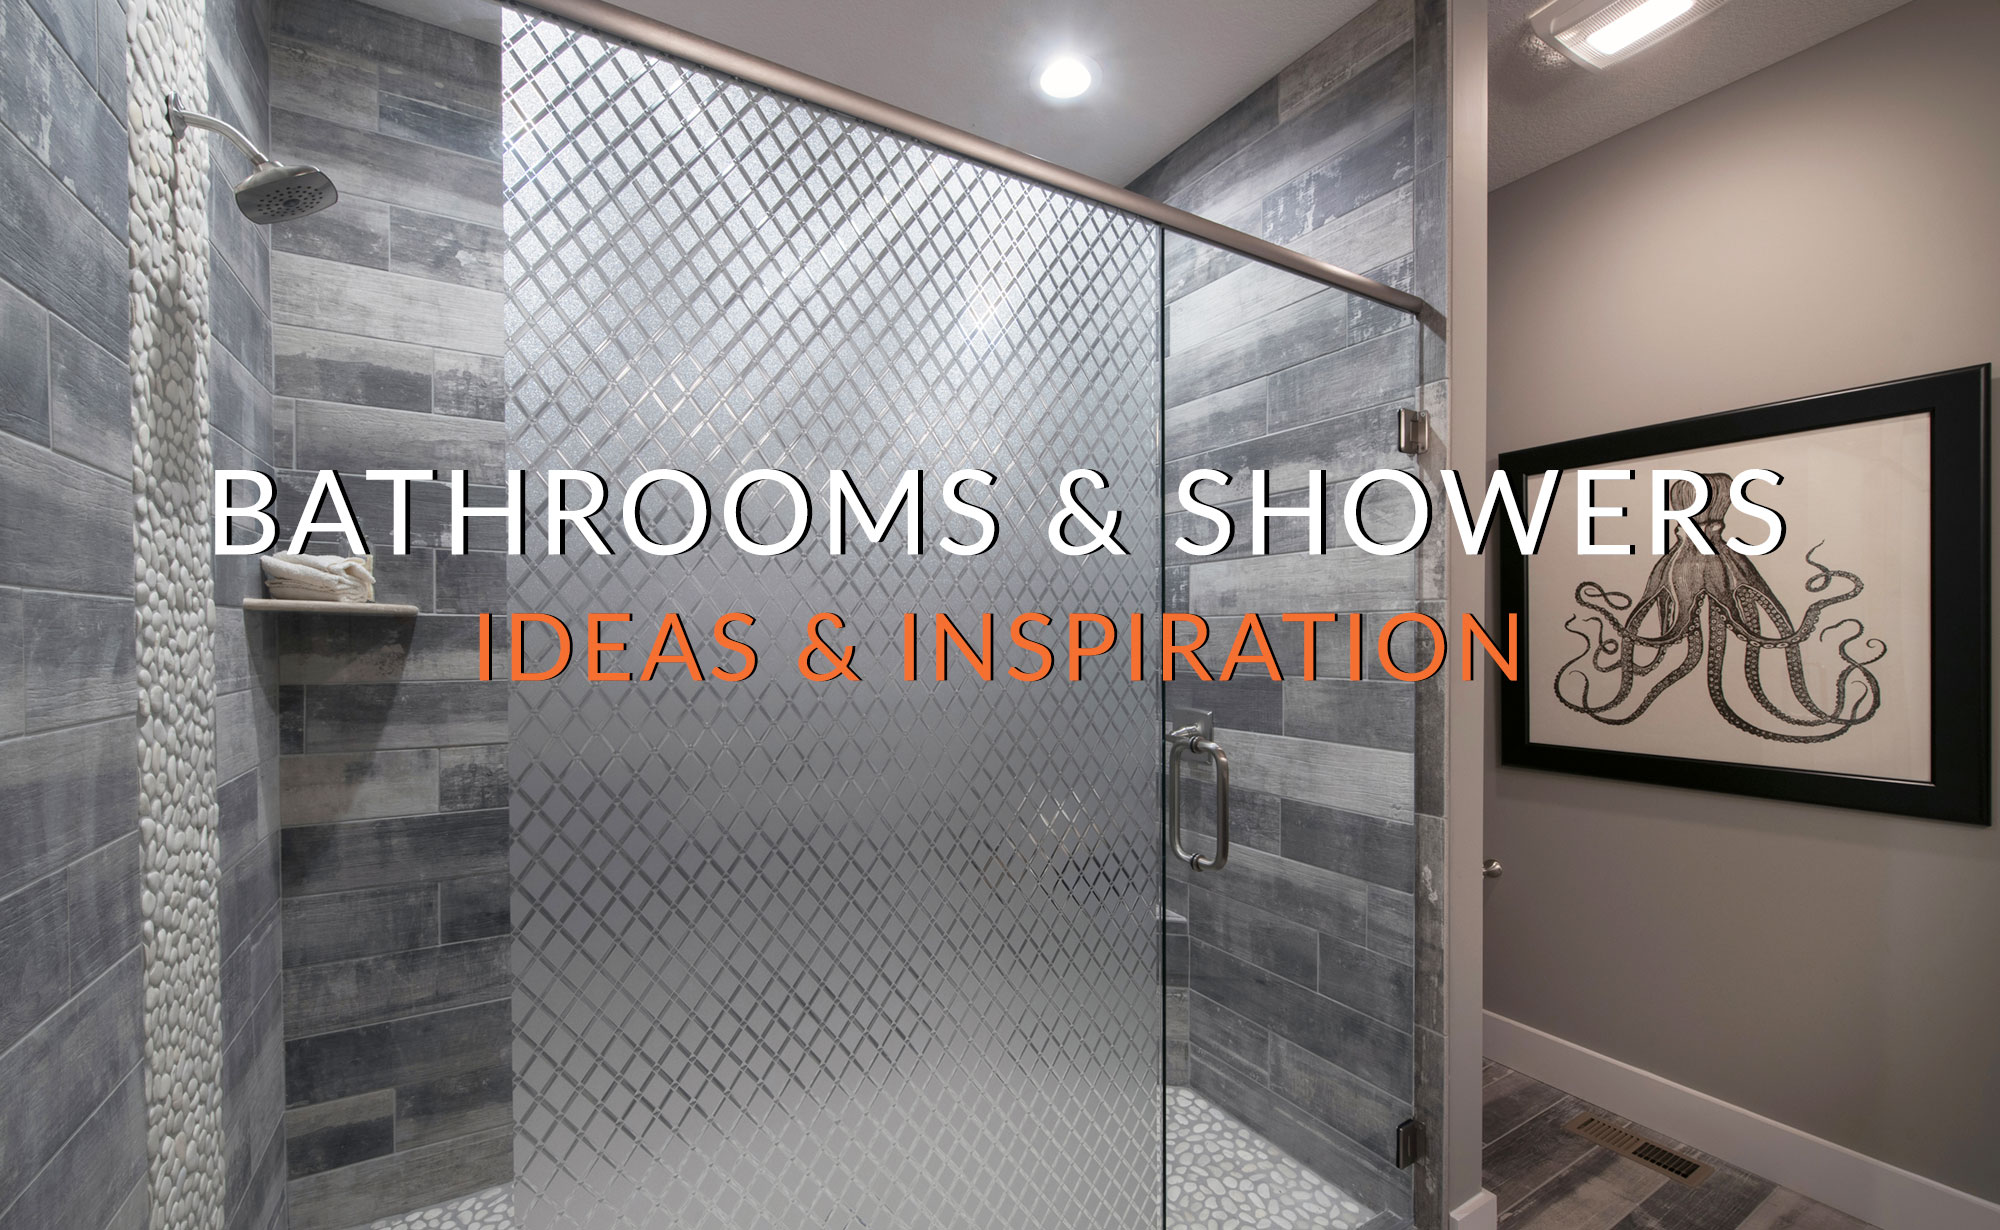 Decorative Privacy Films For Bathroom Windows And Shower